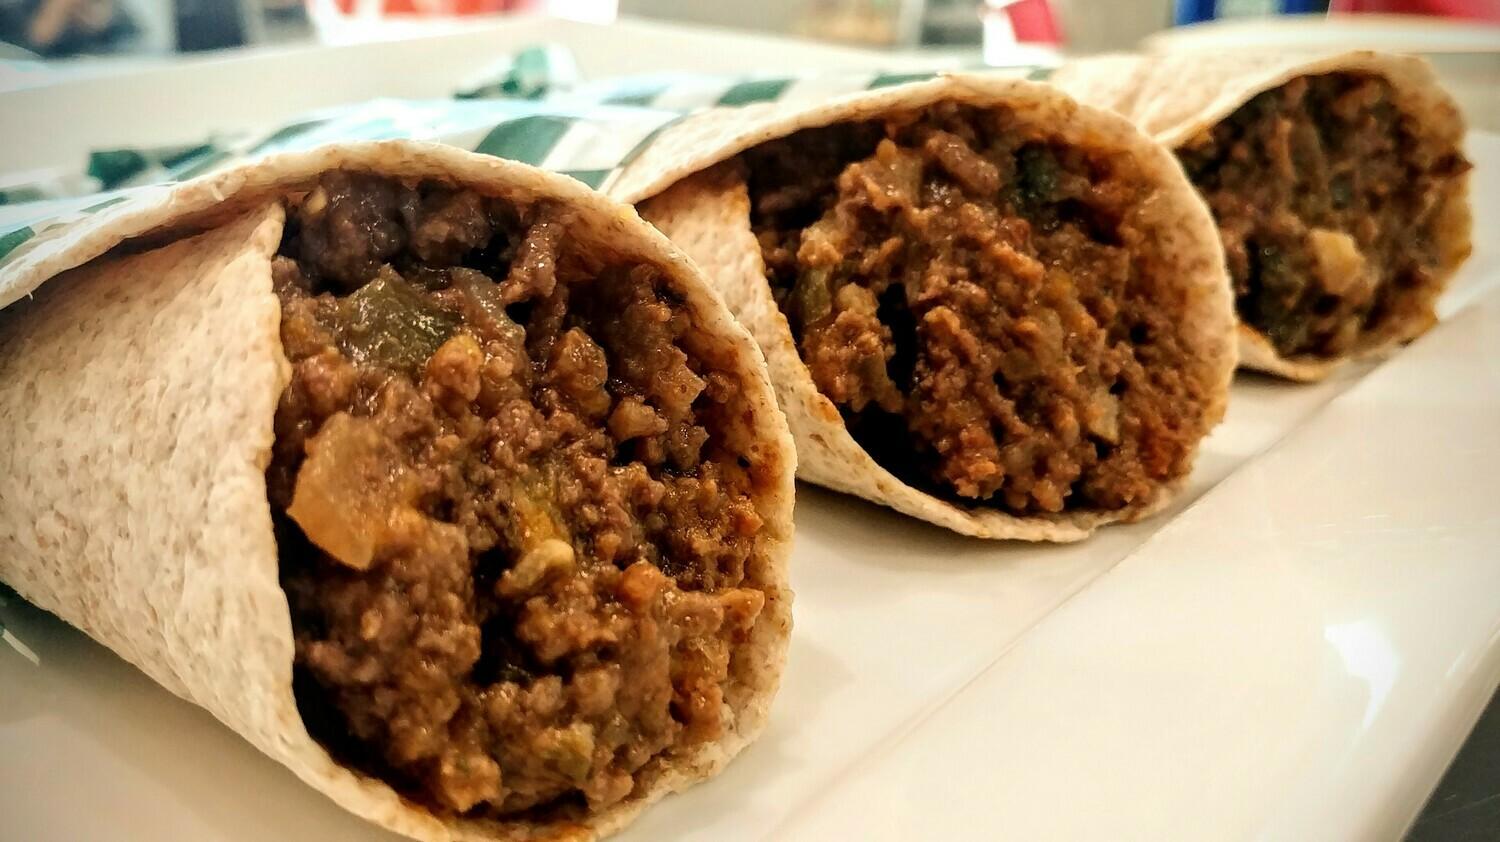 WRAP - Steak, Caramelized Onions w/o Cheese